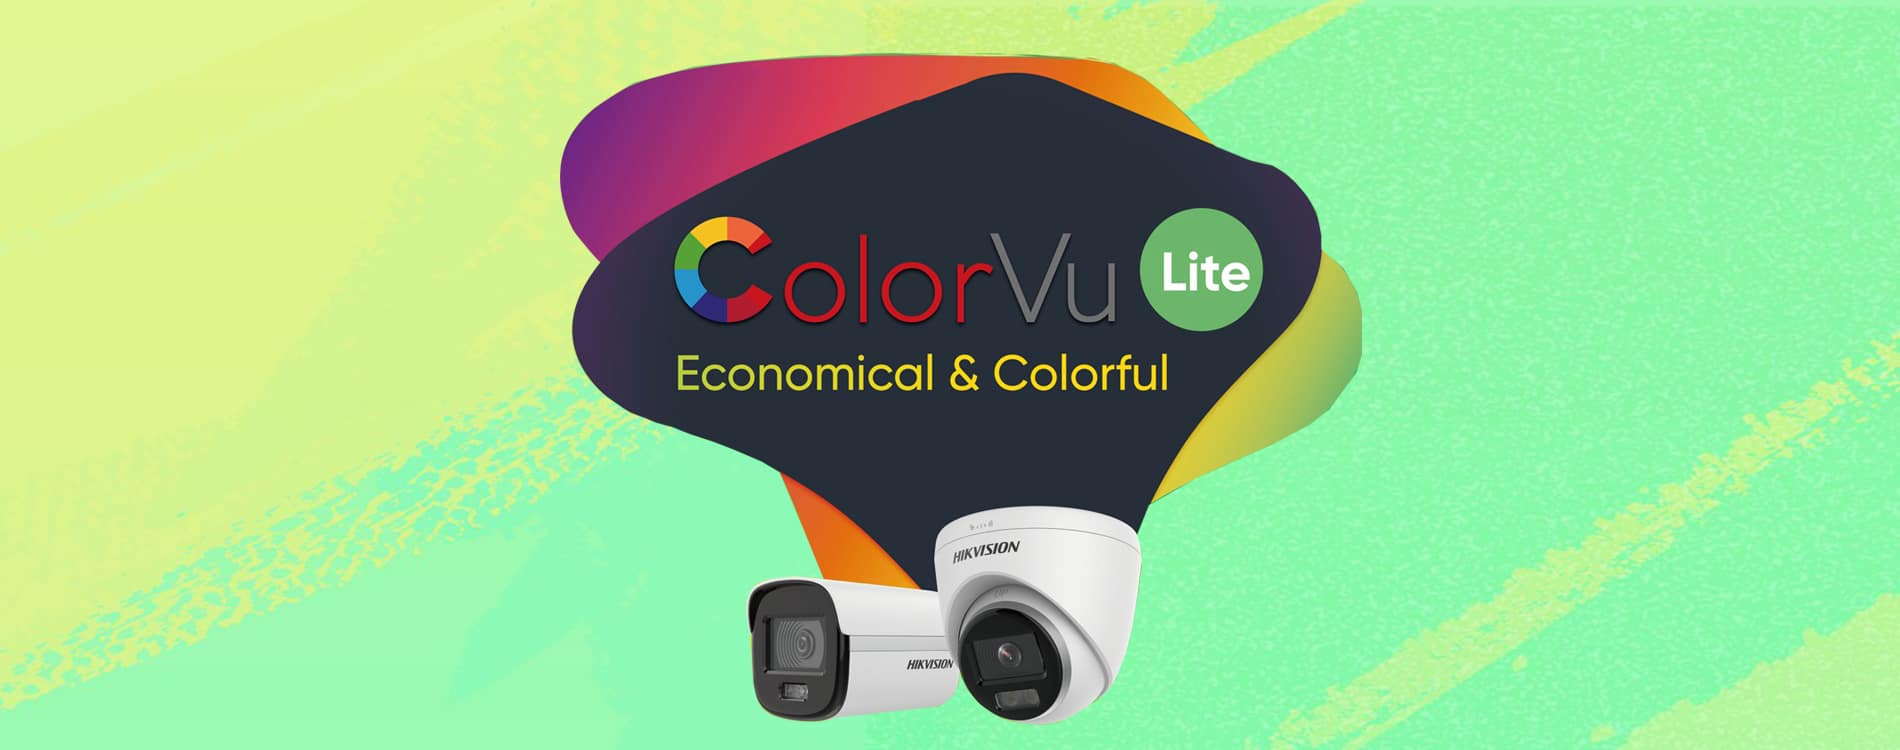 banner camera colorvu lite